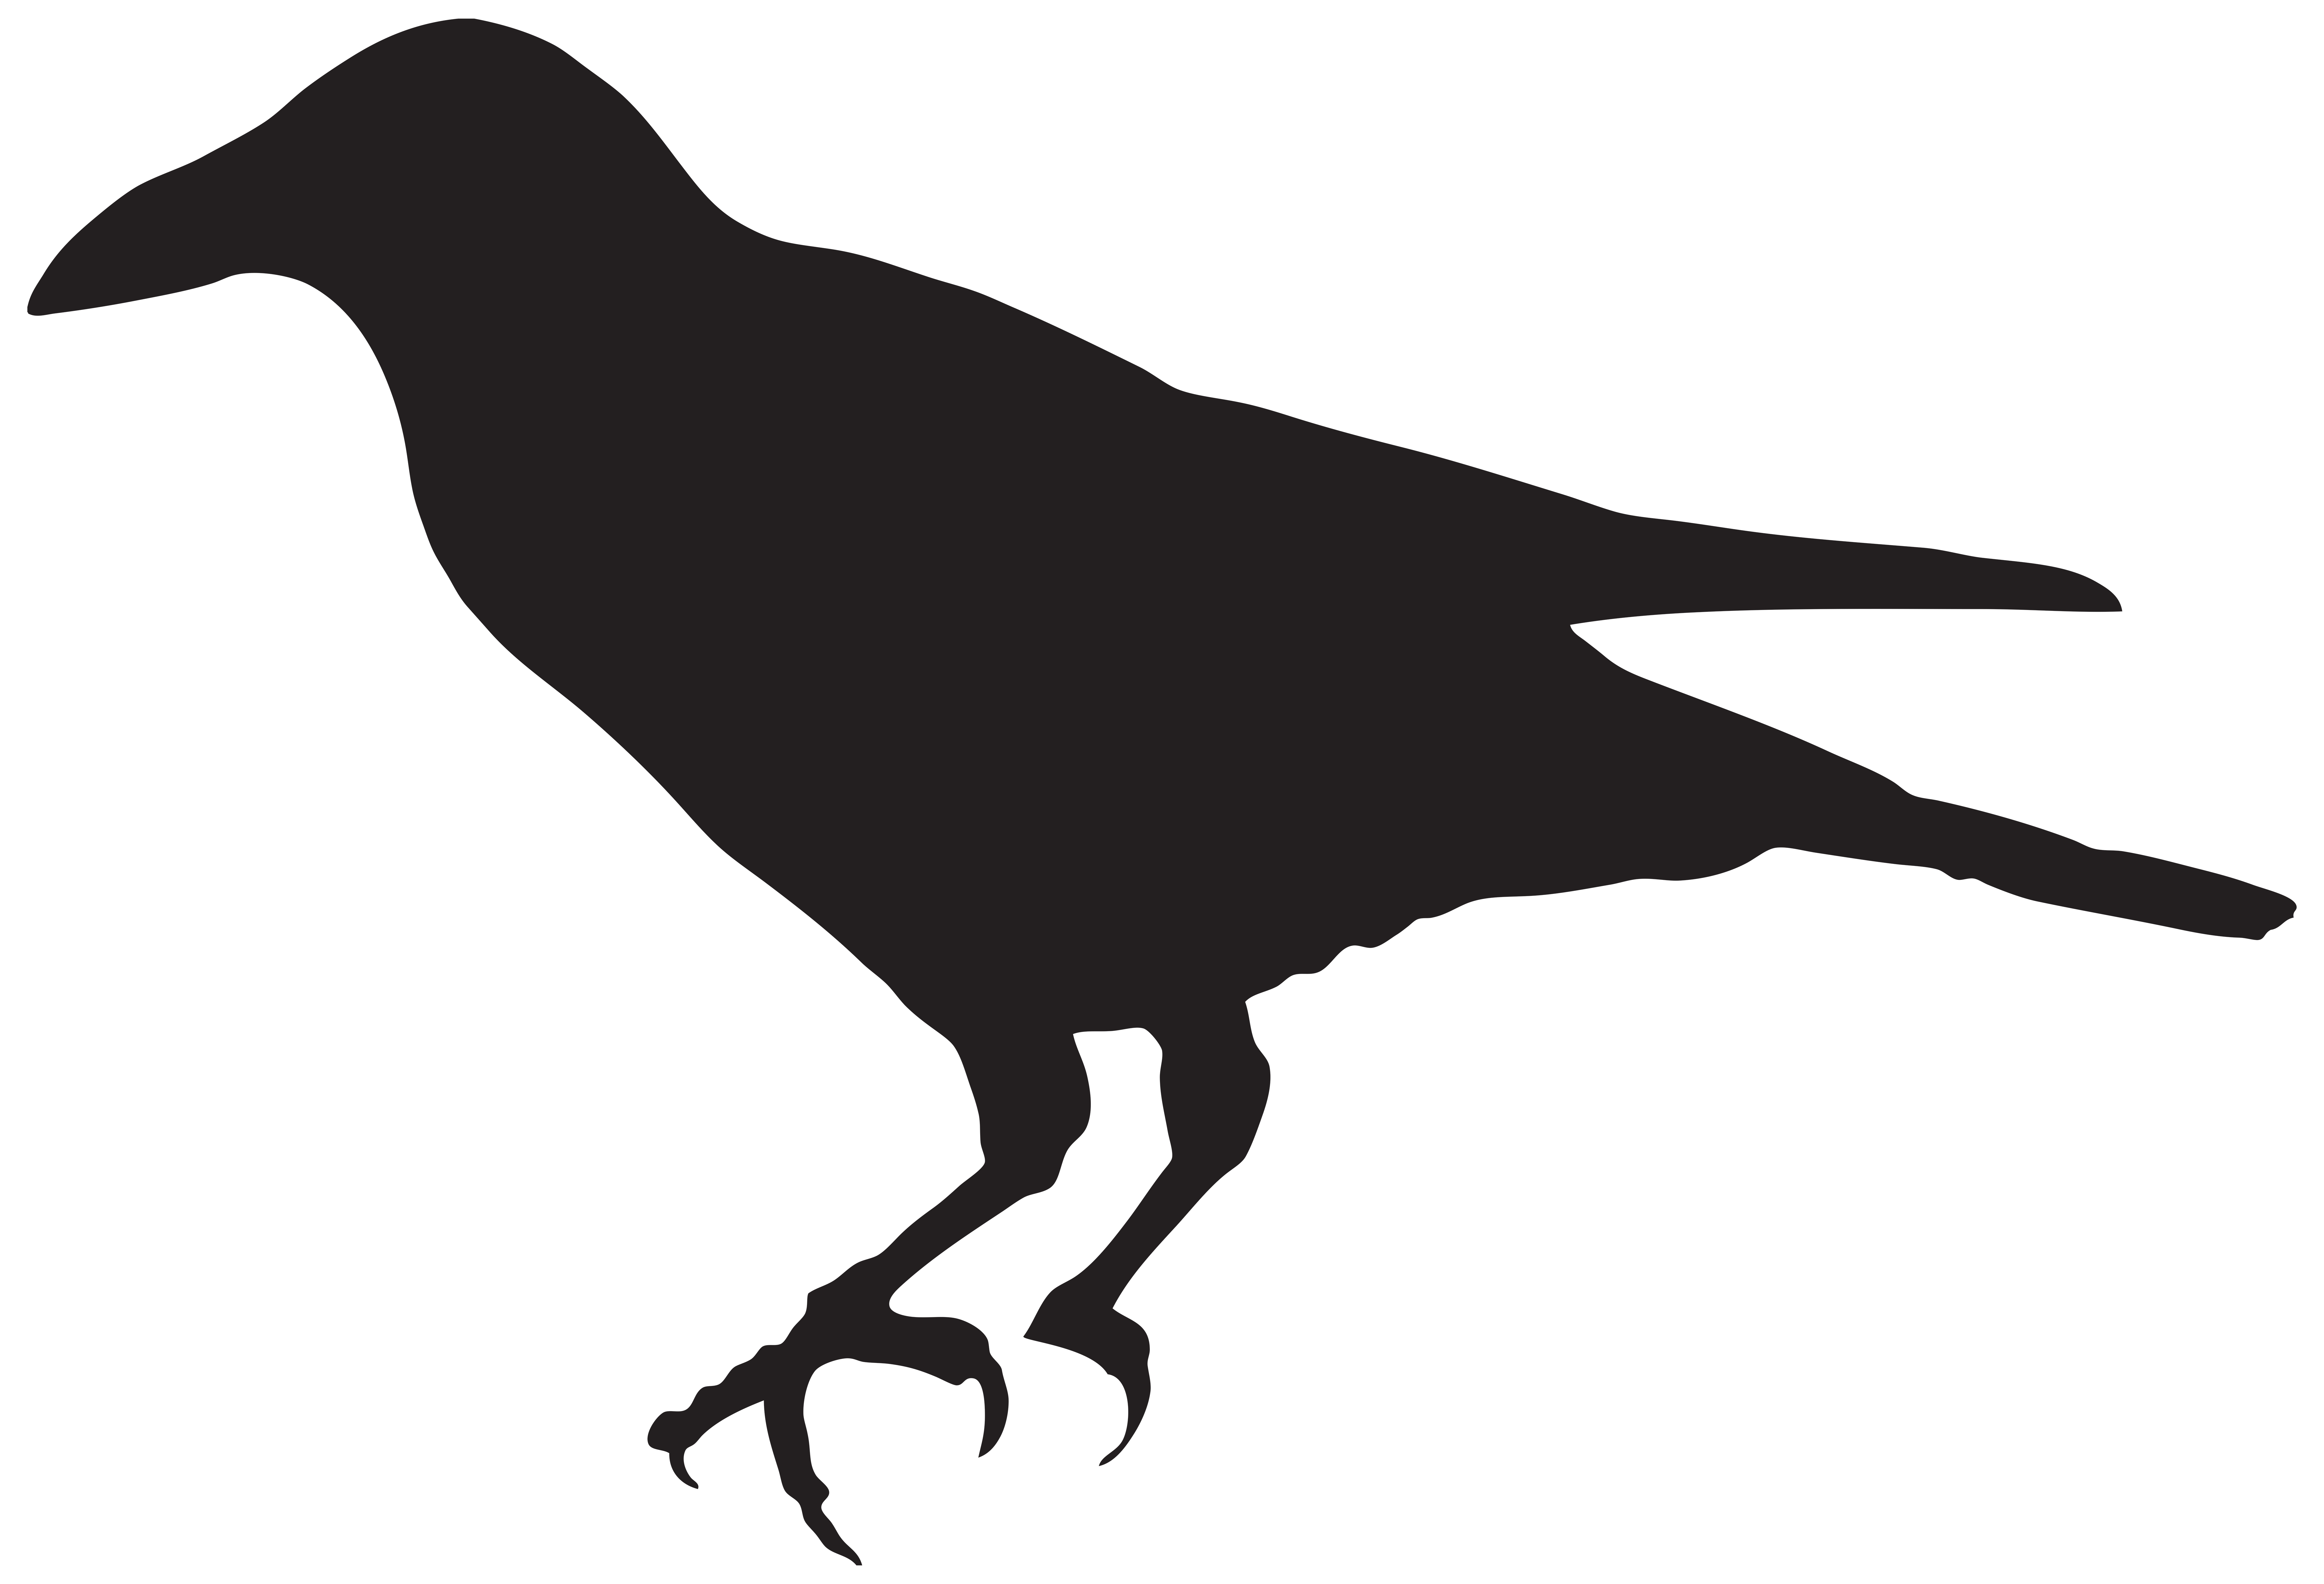 Crow Silhouette PNG Clip Art Image.